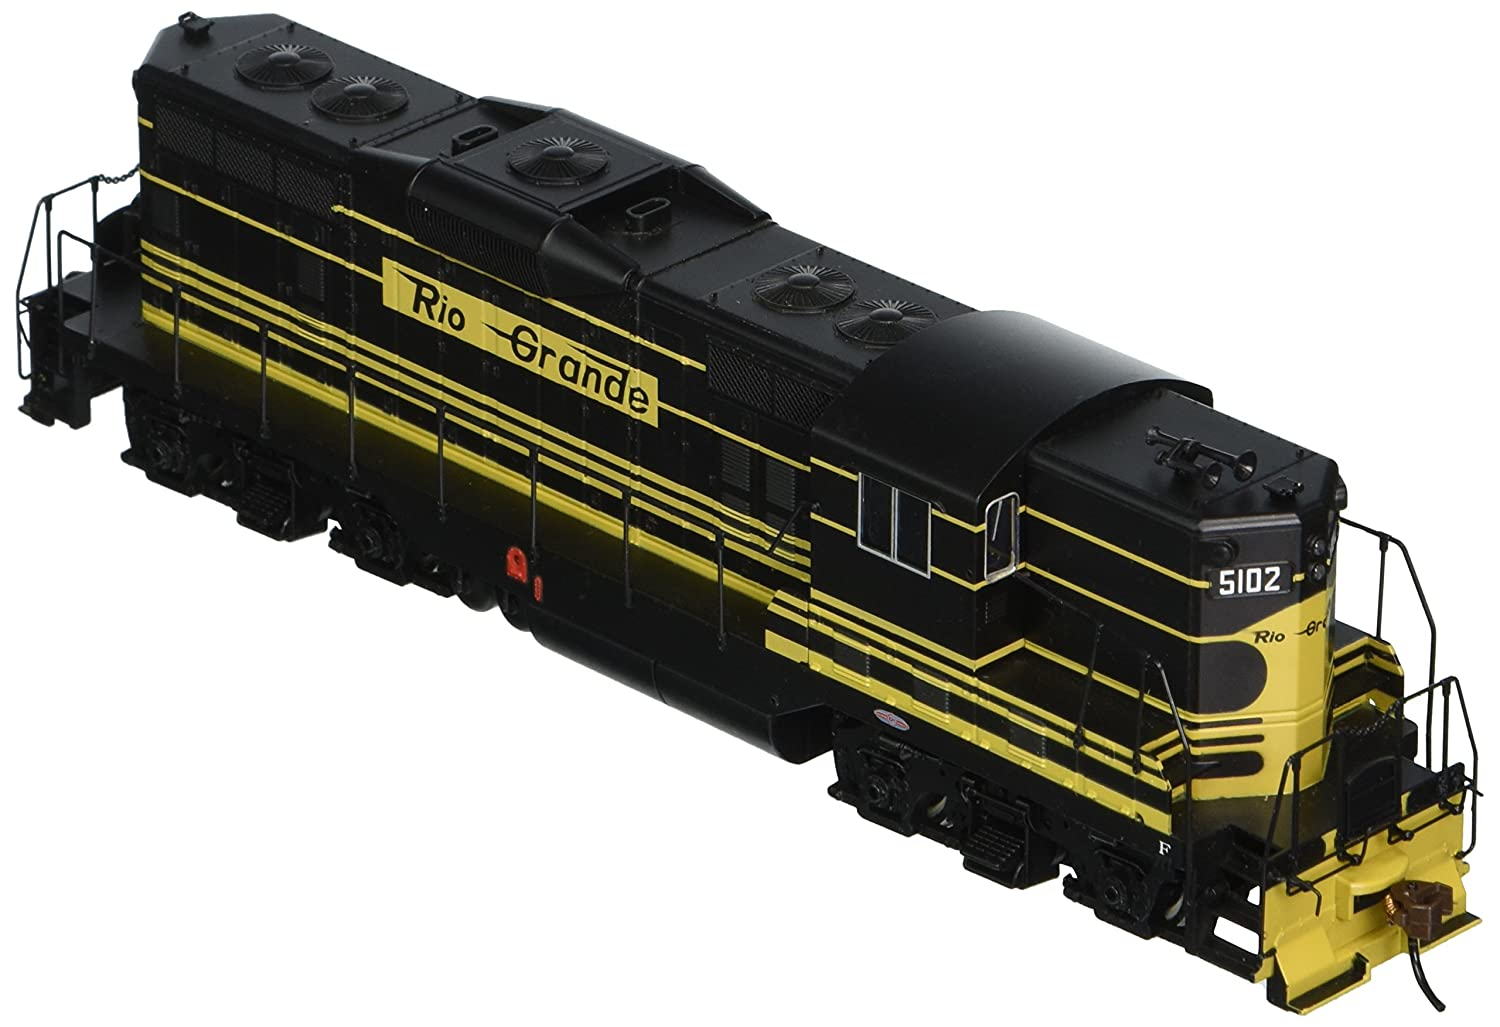 Bachmann Rio Grande 5102 ho scale Emd GP7 locomotive – DCC on Board